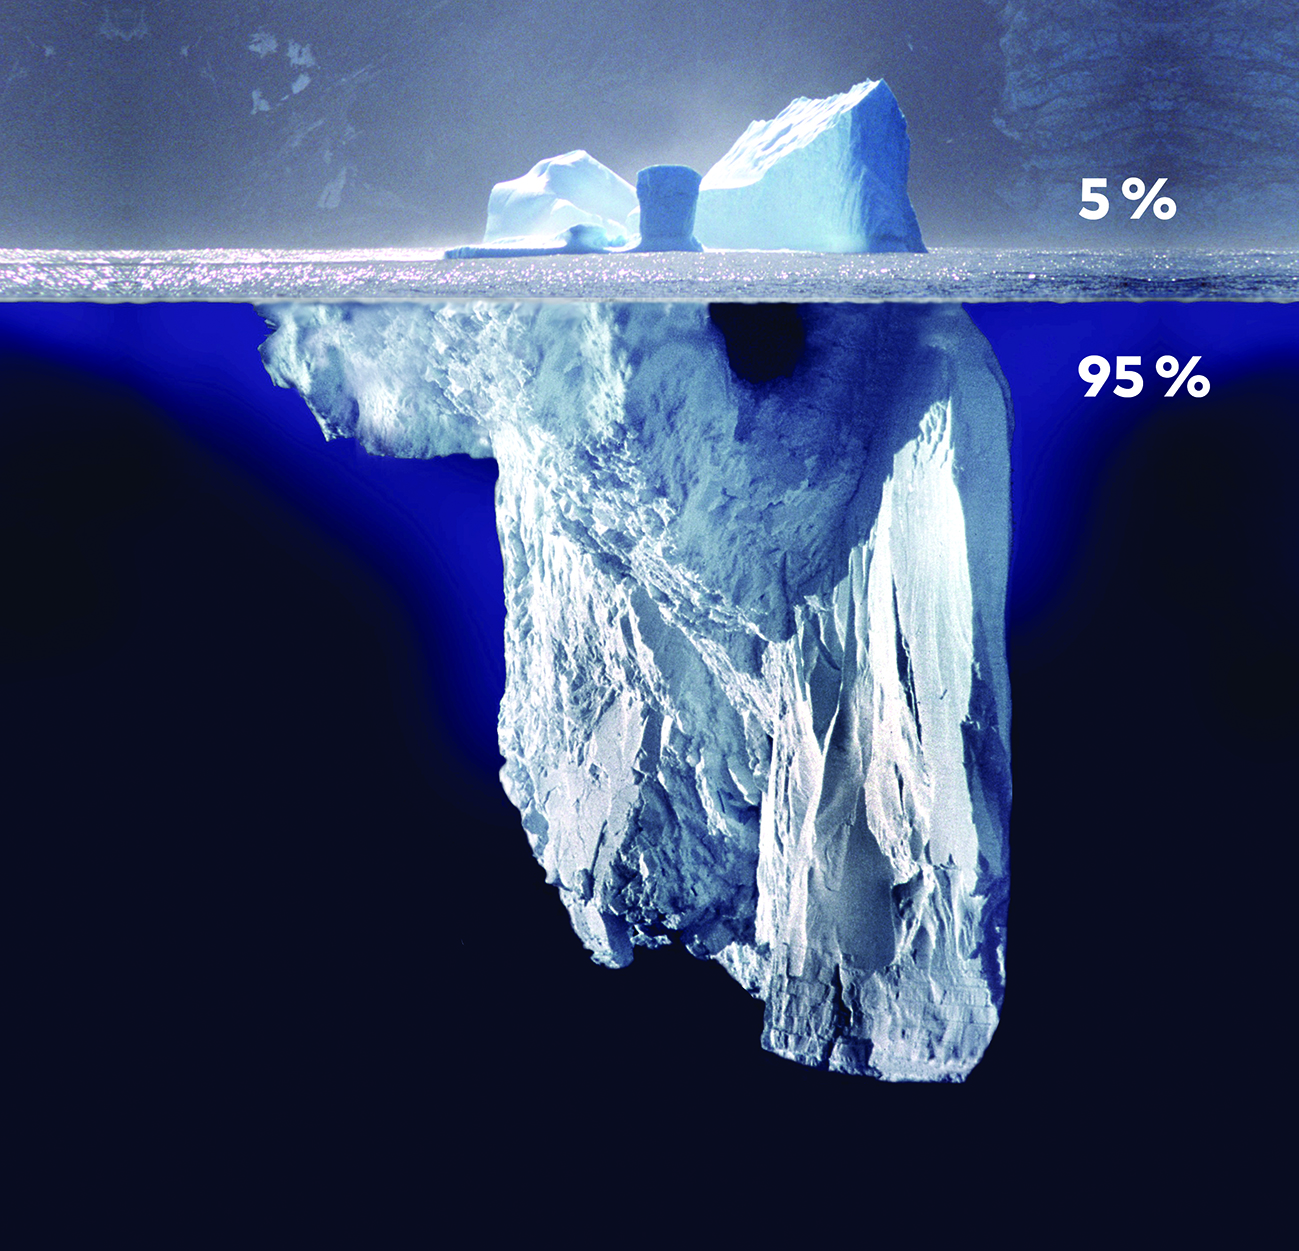 Mext_Consulting_Firm_Melbourne_Trust_Iceberg_5_95.jpg